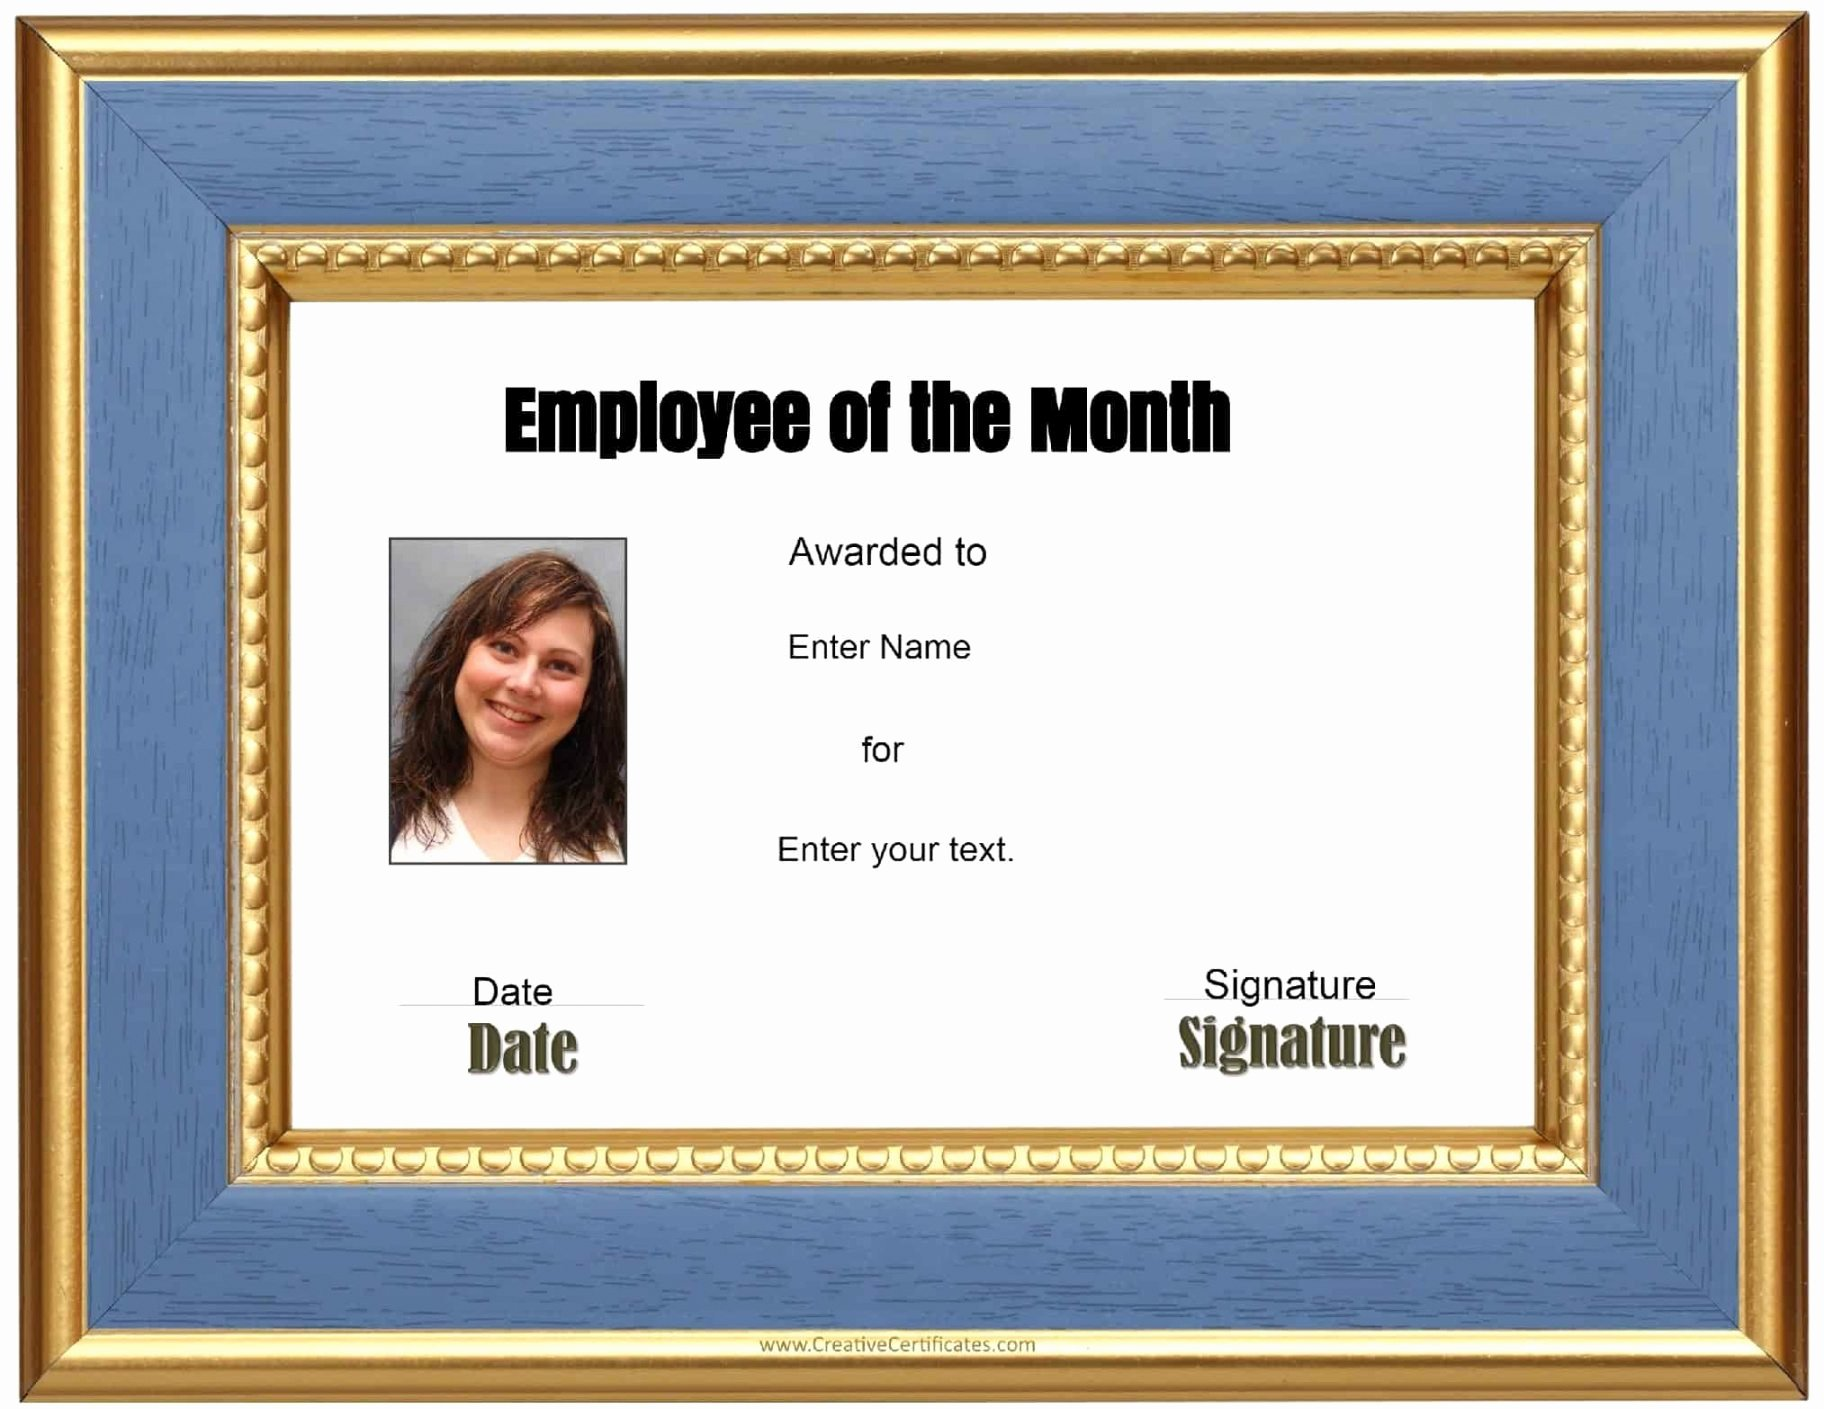 Employee Of the Month Certificate Free Template Awesome Employee the Month Certificate Template